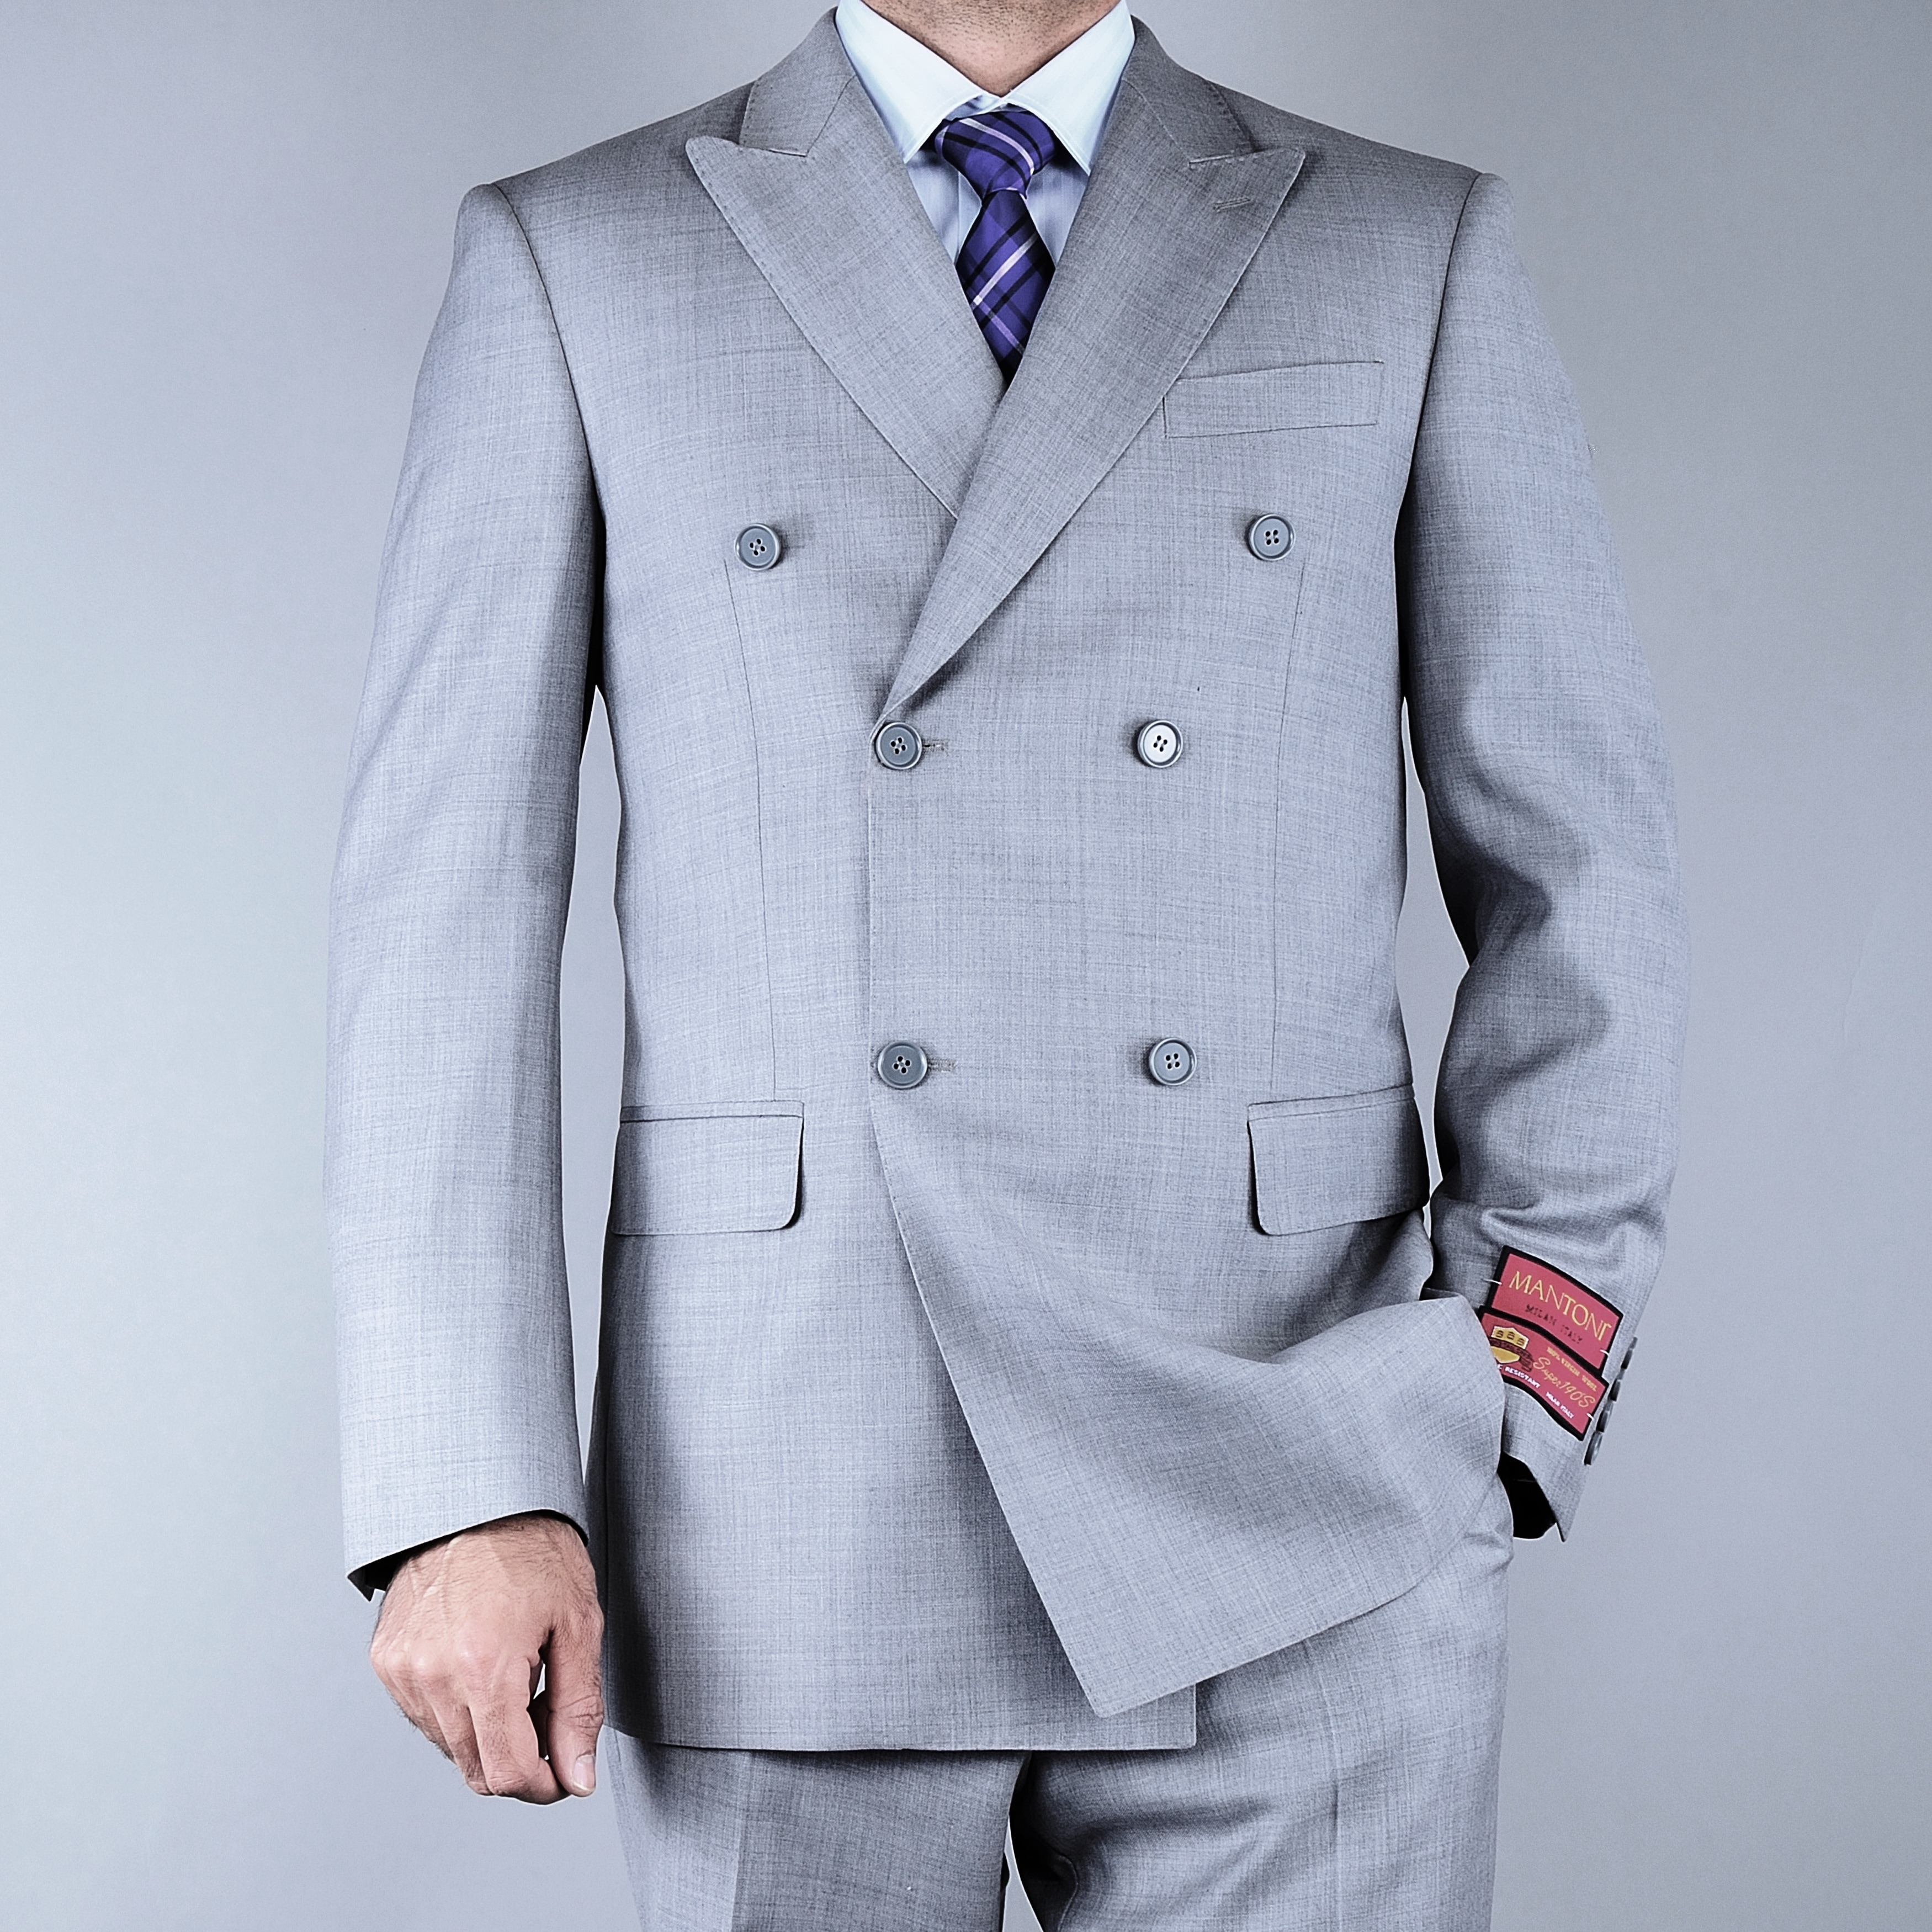 Mantoni Men's Classic Fit Textured Grey Double Breasted Wool Suit